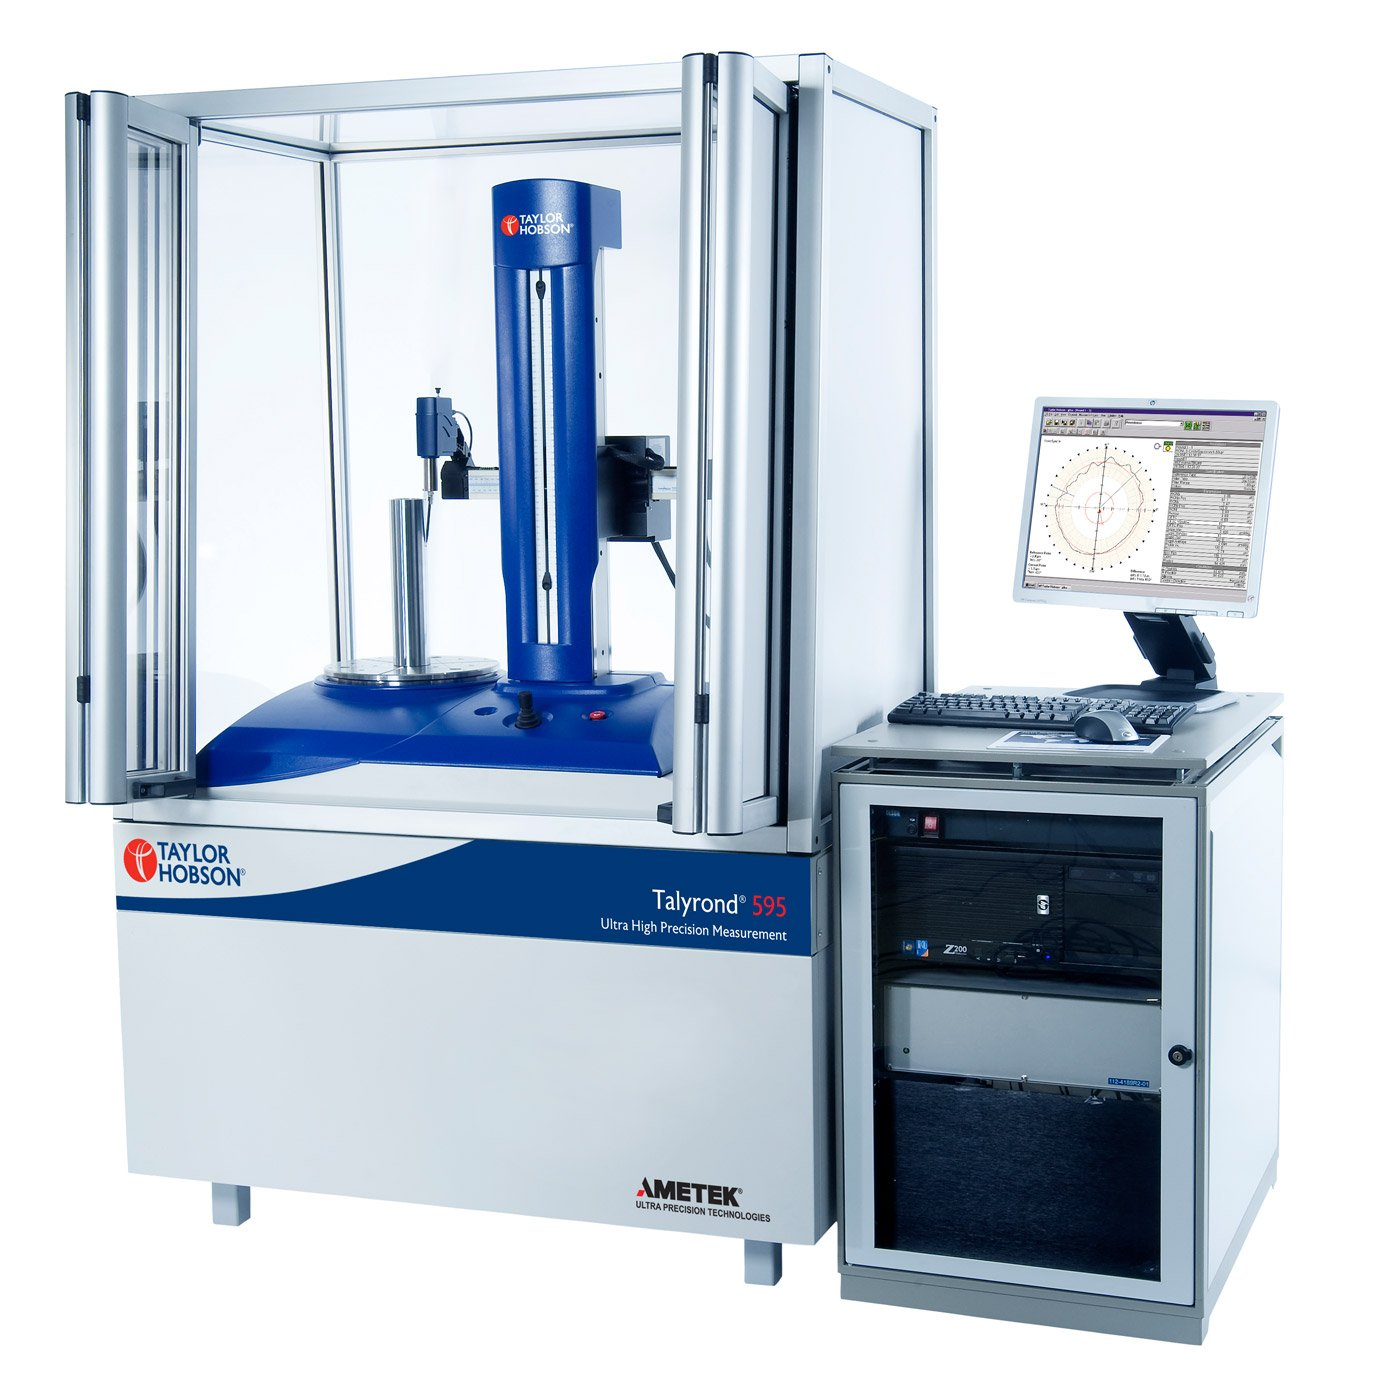 Talyrond 595H - precision roundness measurement machine and enhanced with innovative software